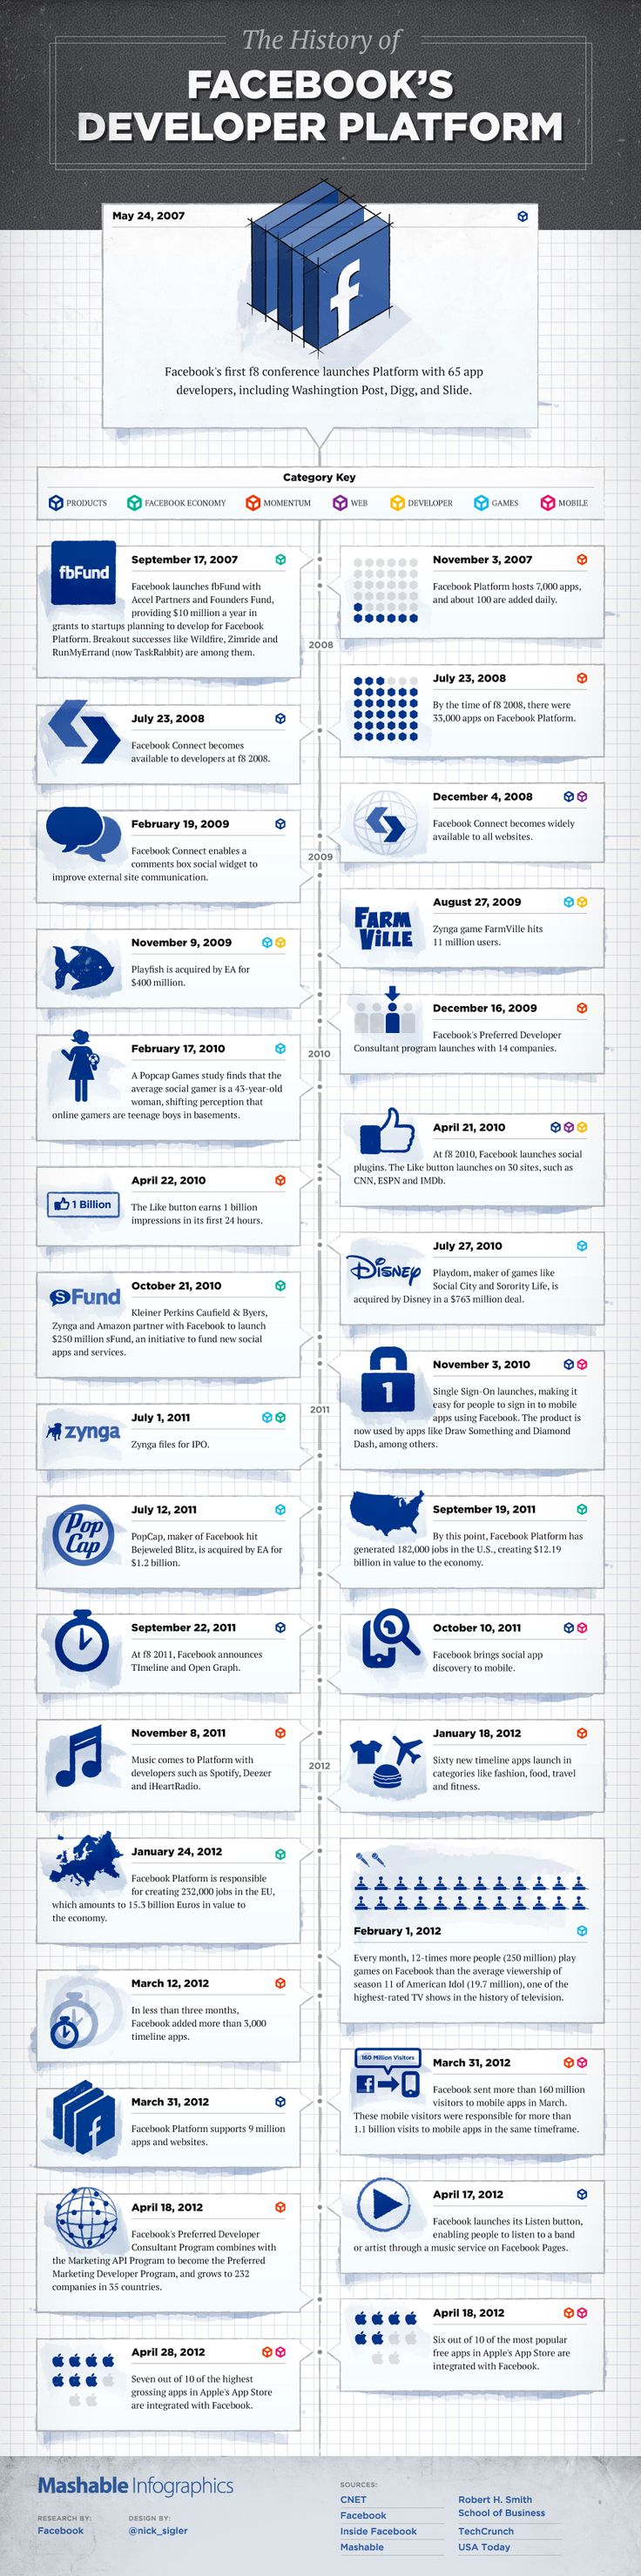 The History of Facebook's Deve